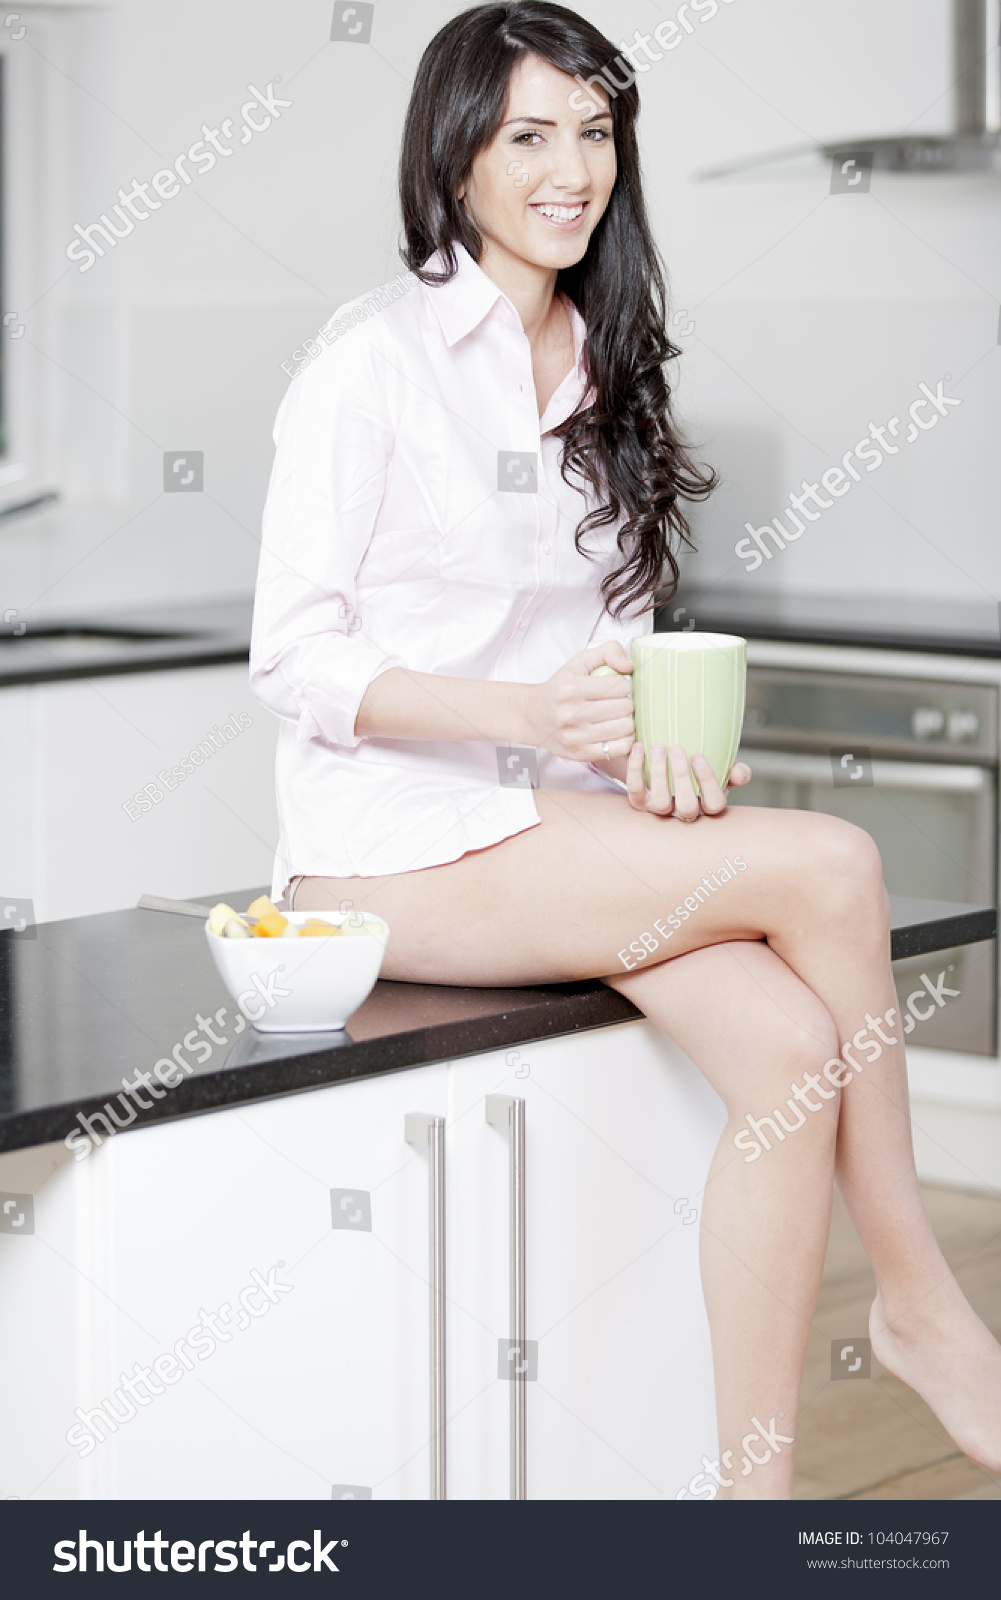 d0f711cf8f2d Young woman in underwear and pink shirt sat in kitchen eating breakfast